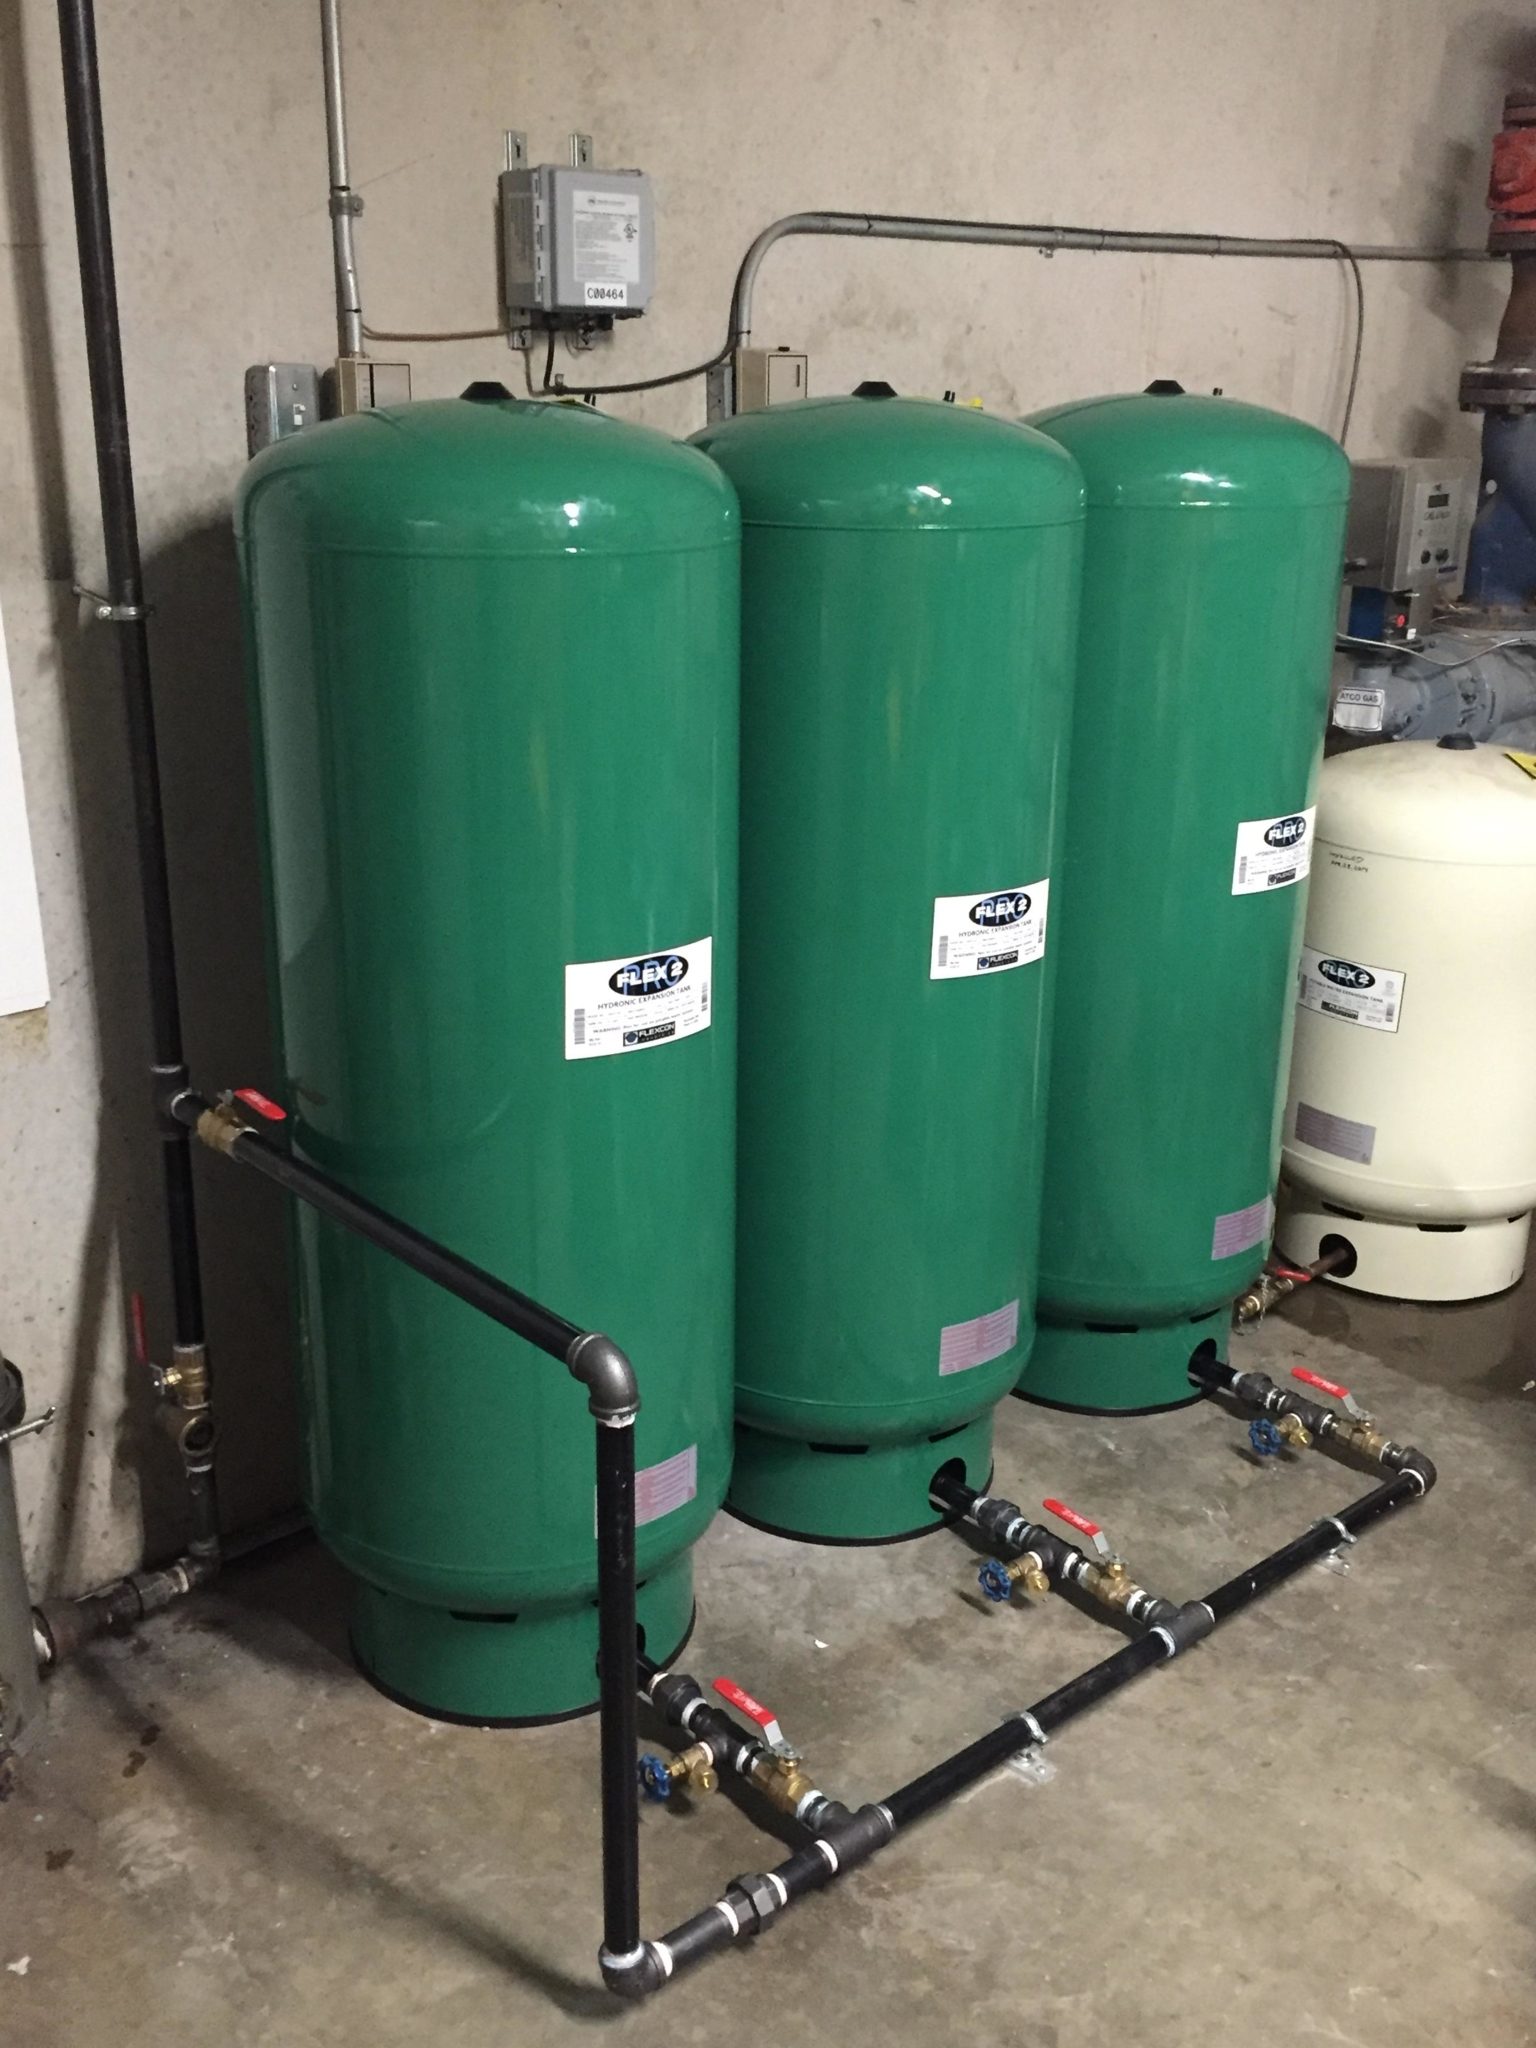 Expansion tanks make sure your boilers and hydronic heating system operate safely and efficiently an Hydro-Flo Plumbing And Heating Edmonton (780)203-2230